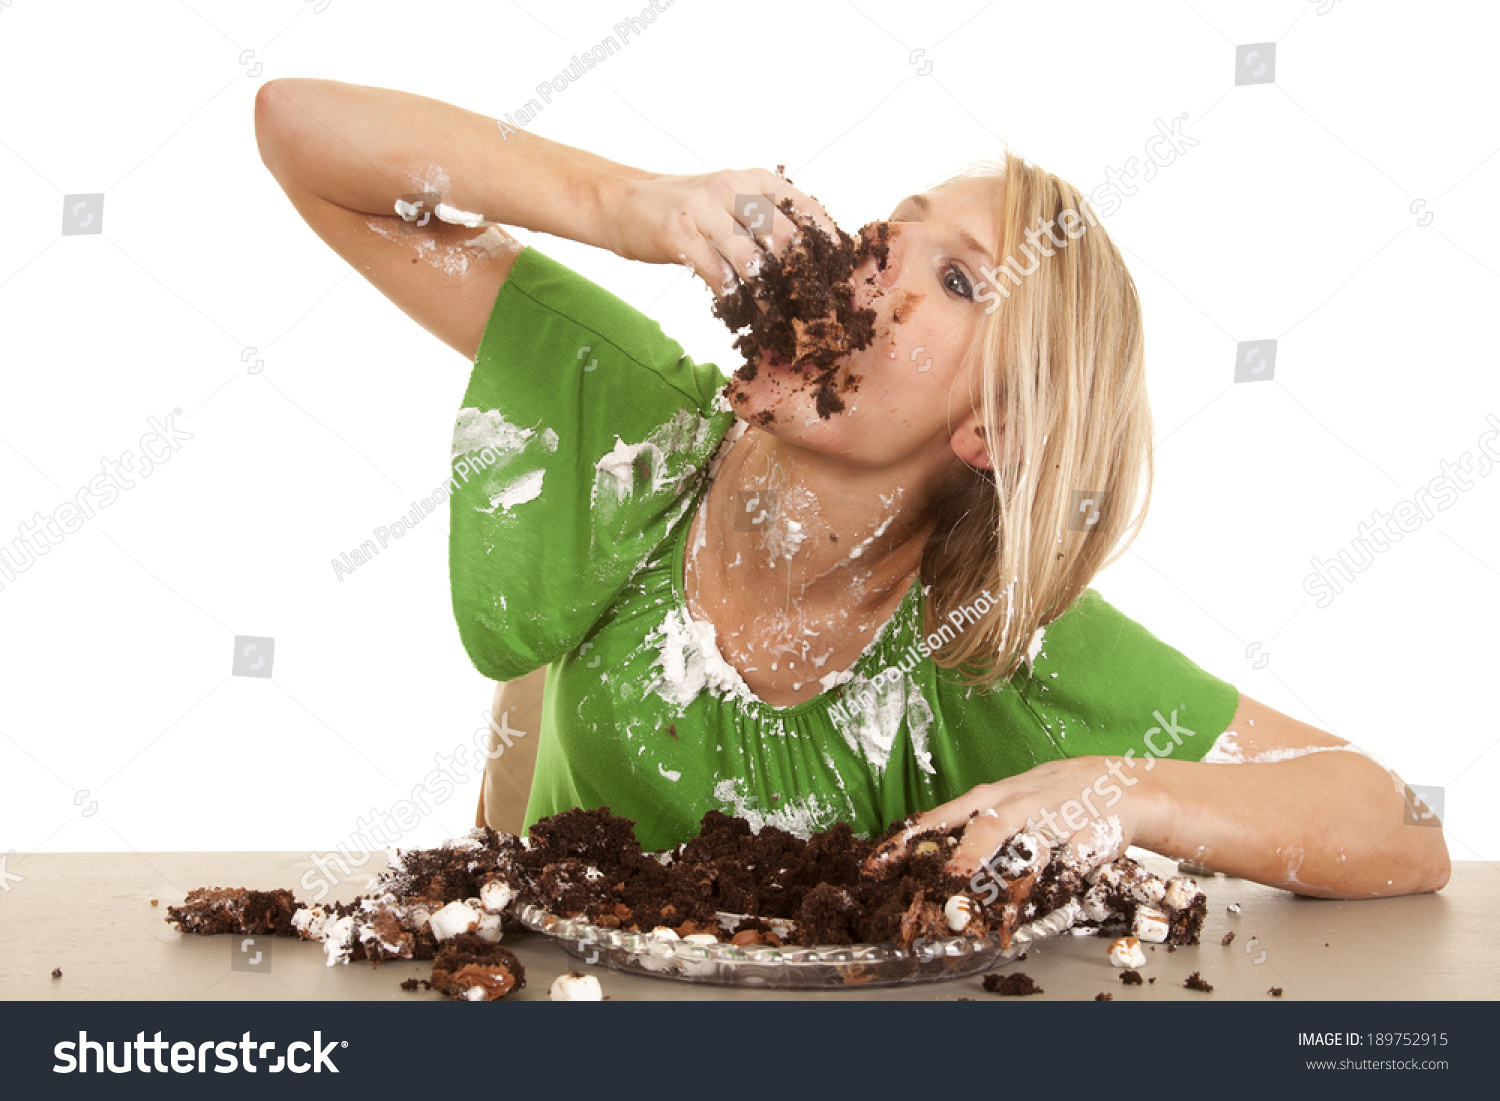 Images Cake In Face : Woman Stuffing Her Face Chocolate Cake Stock Photo ...